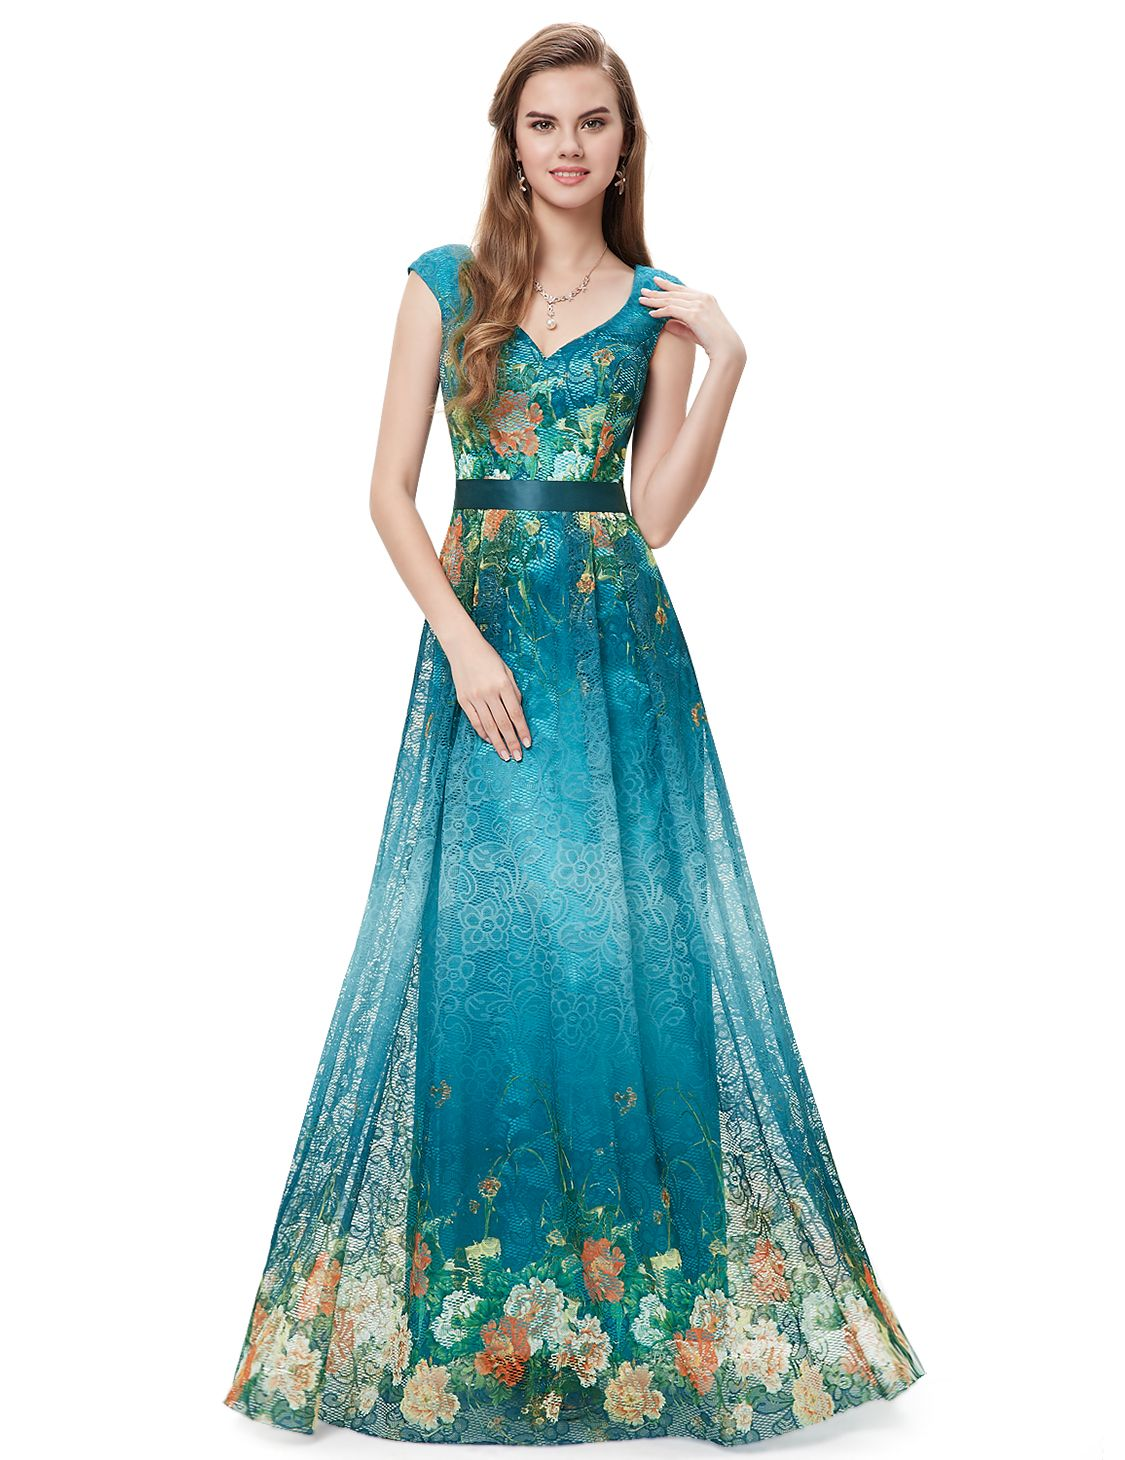 Elegant printed floral lace long formal evening party dress